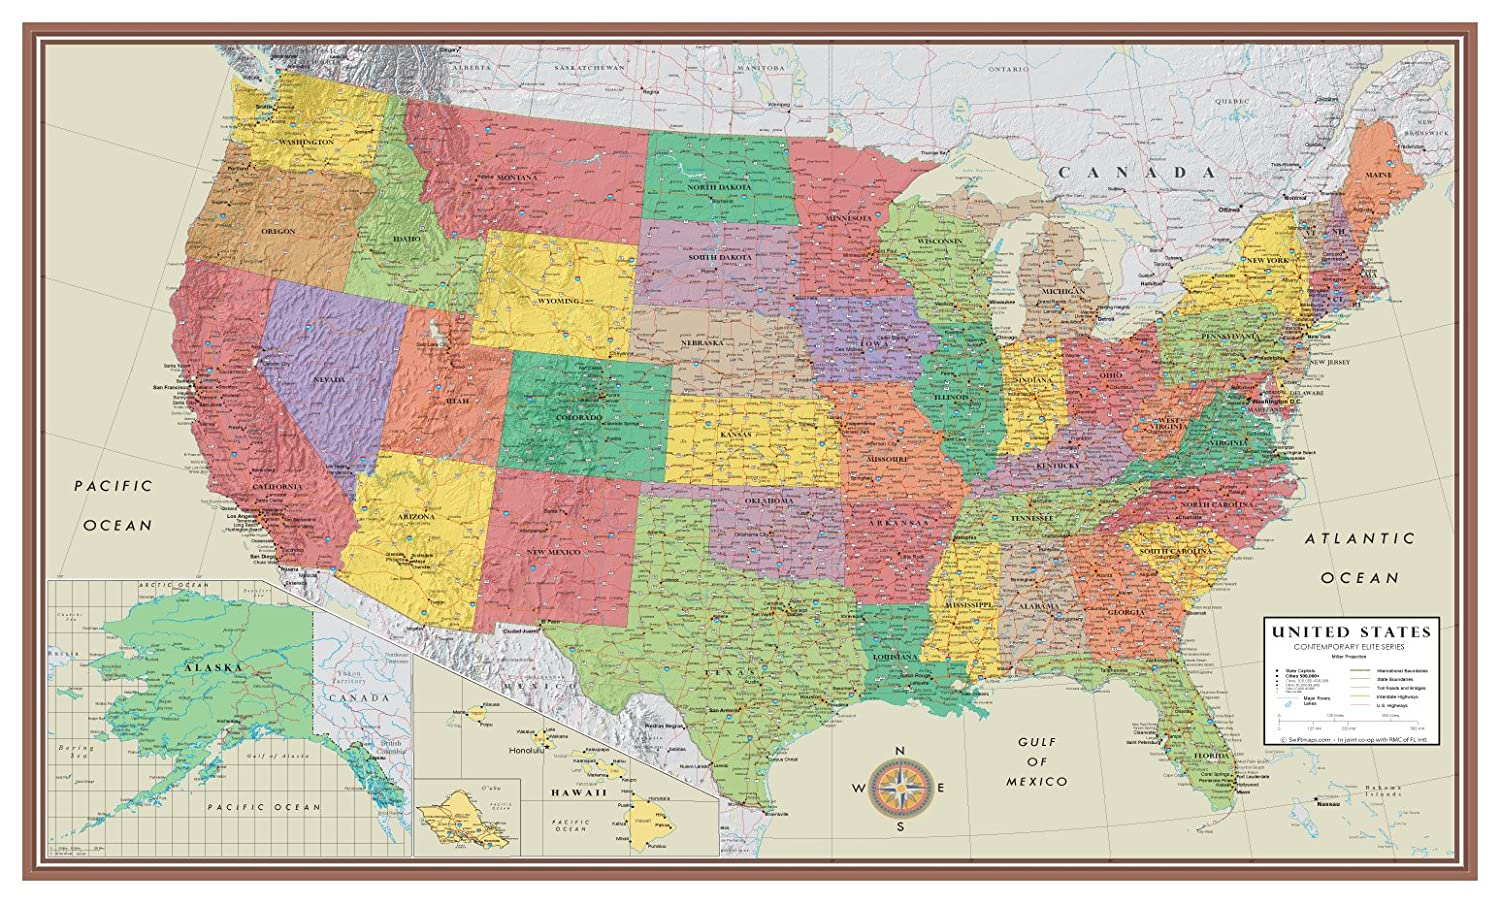 Amazoncom X United States USA Contemporary Elite Wall Map - Usa map of the states